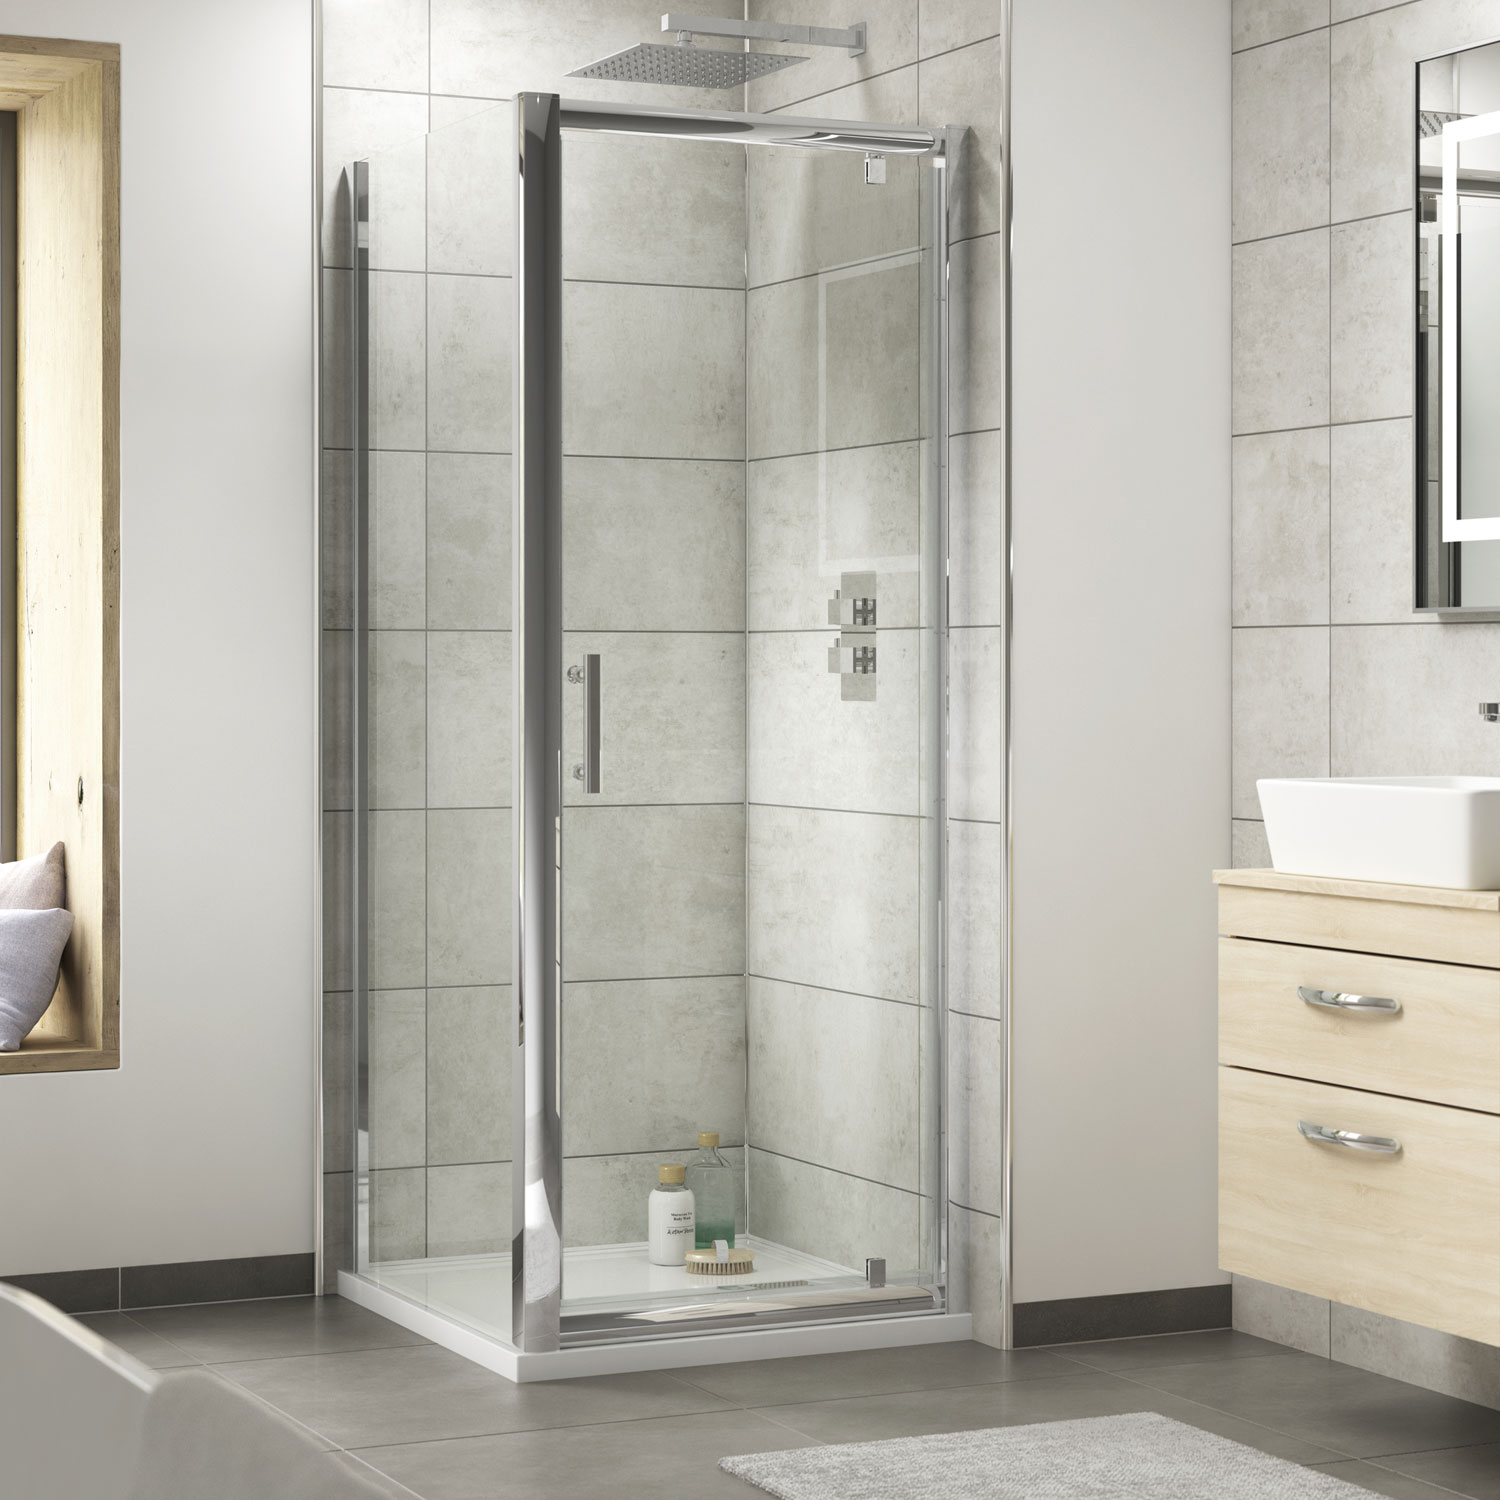 Premier Pacific Pivot Shower Enclosure 700mm x 700mm with Shower Tray - 6mm Glass-3